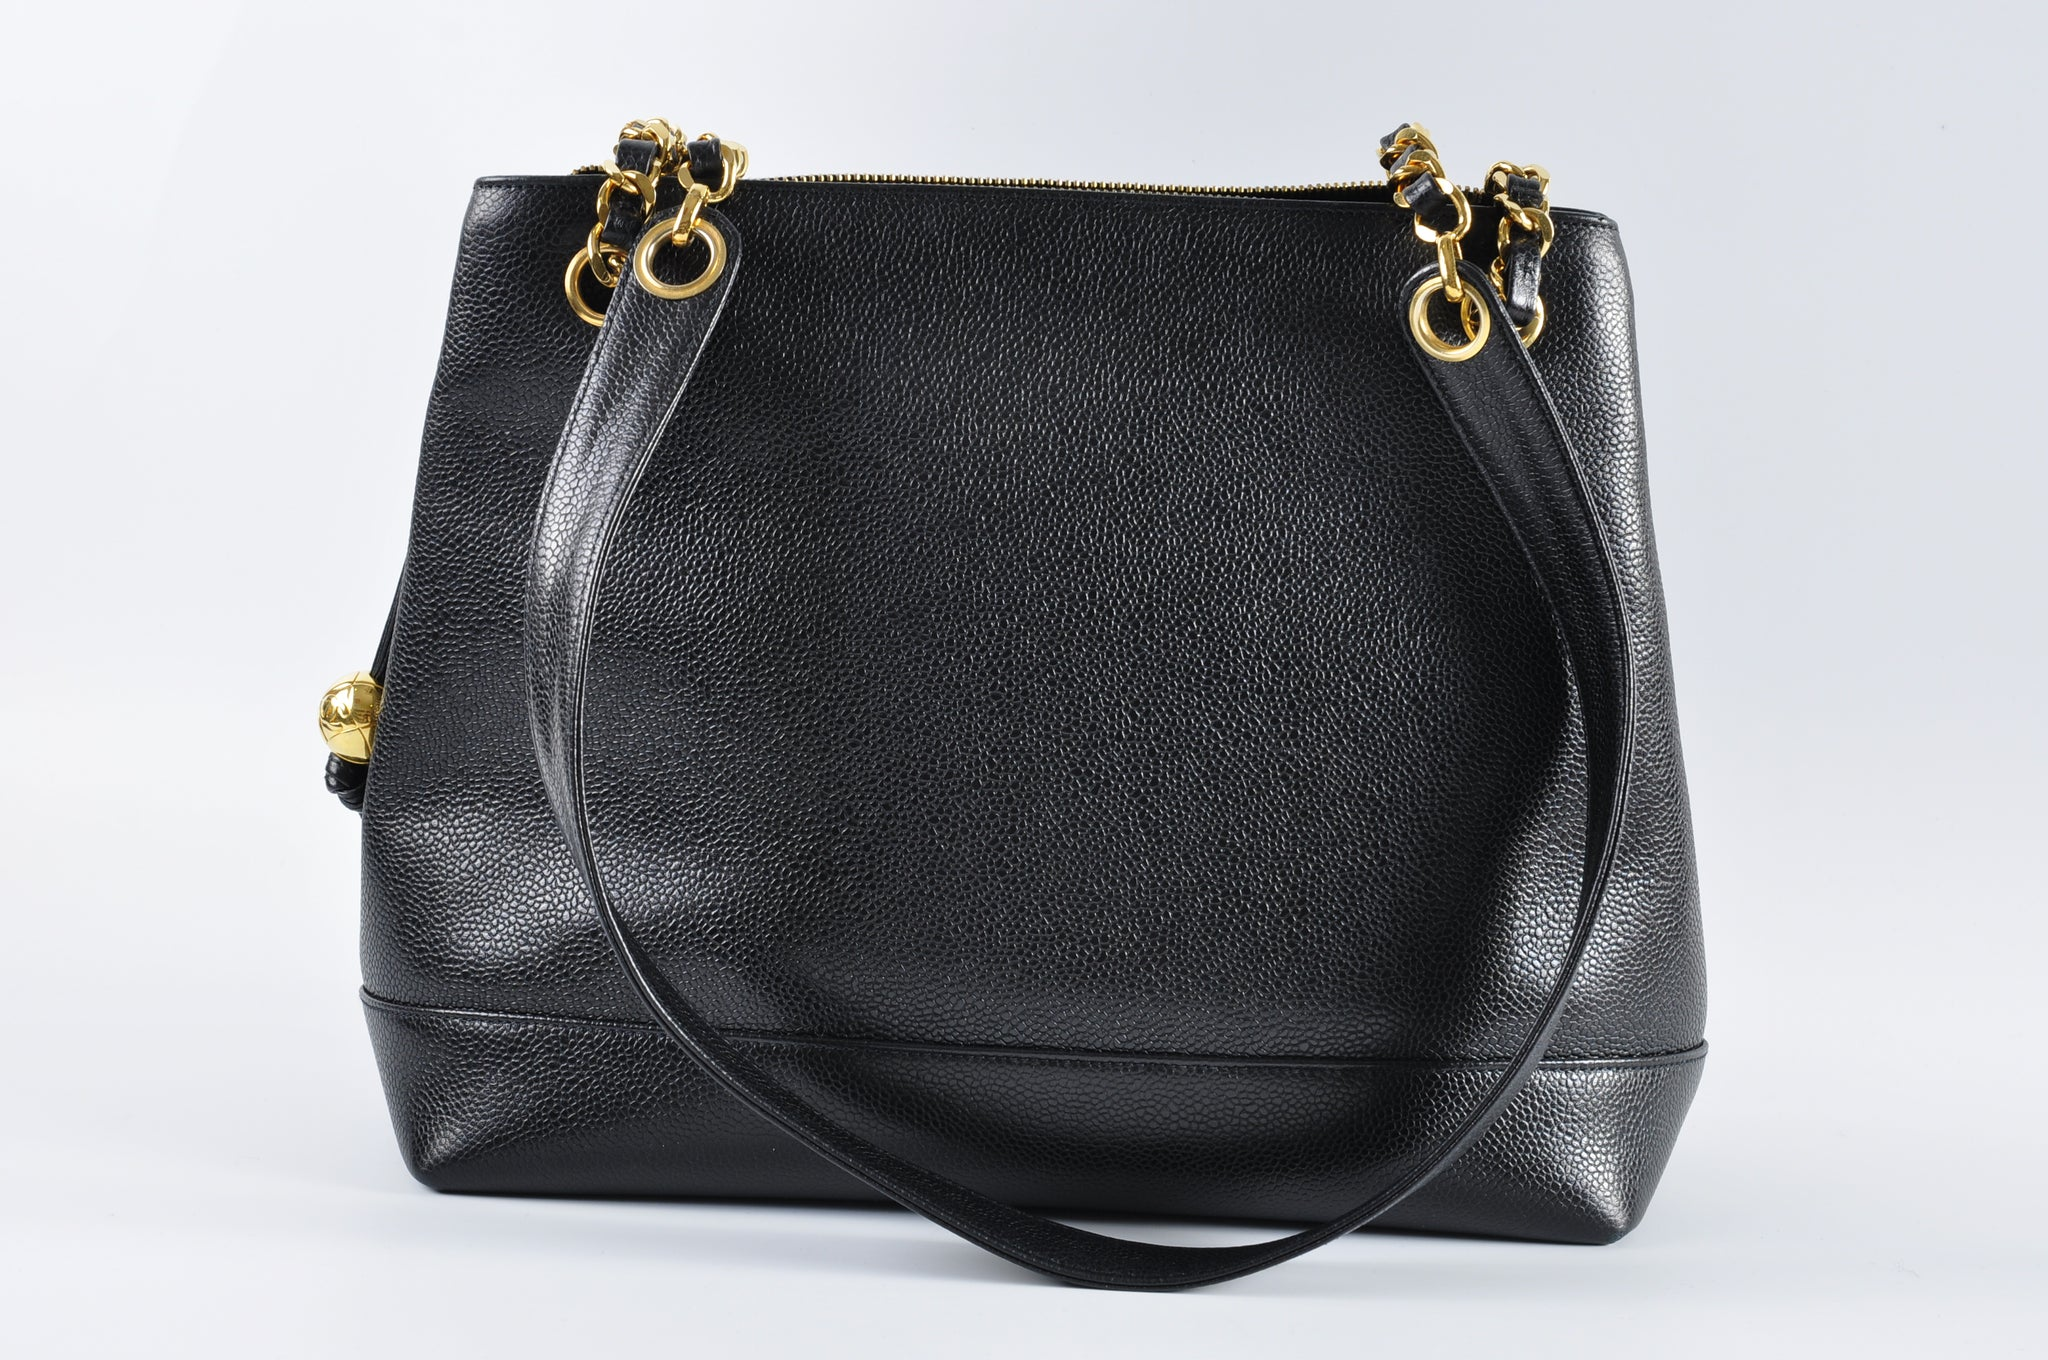 Chanel Vintage Caviar CC Shopper Tote in Black GHW - Glampot